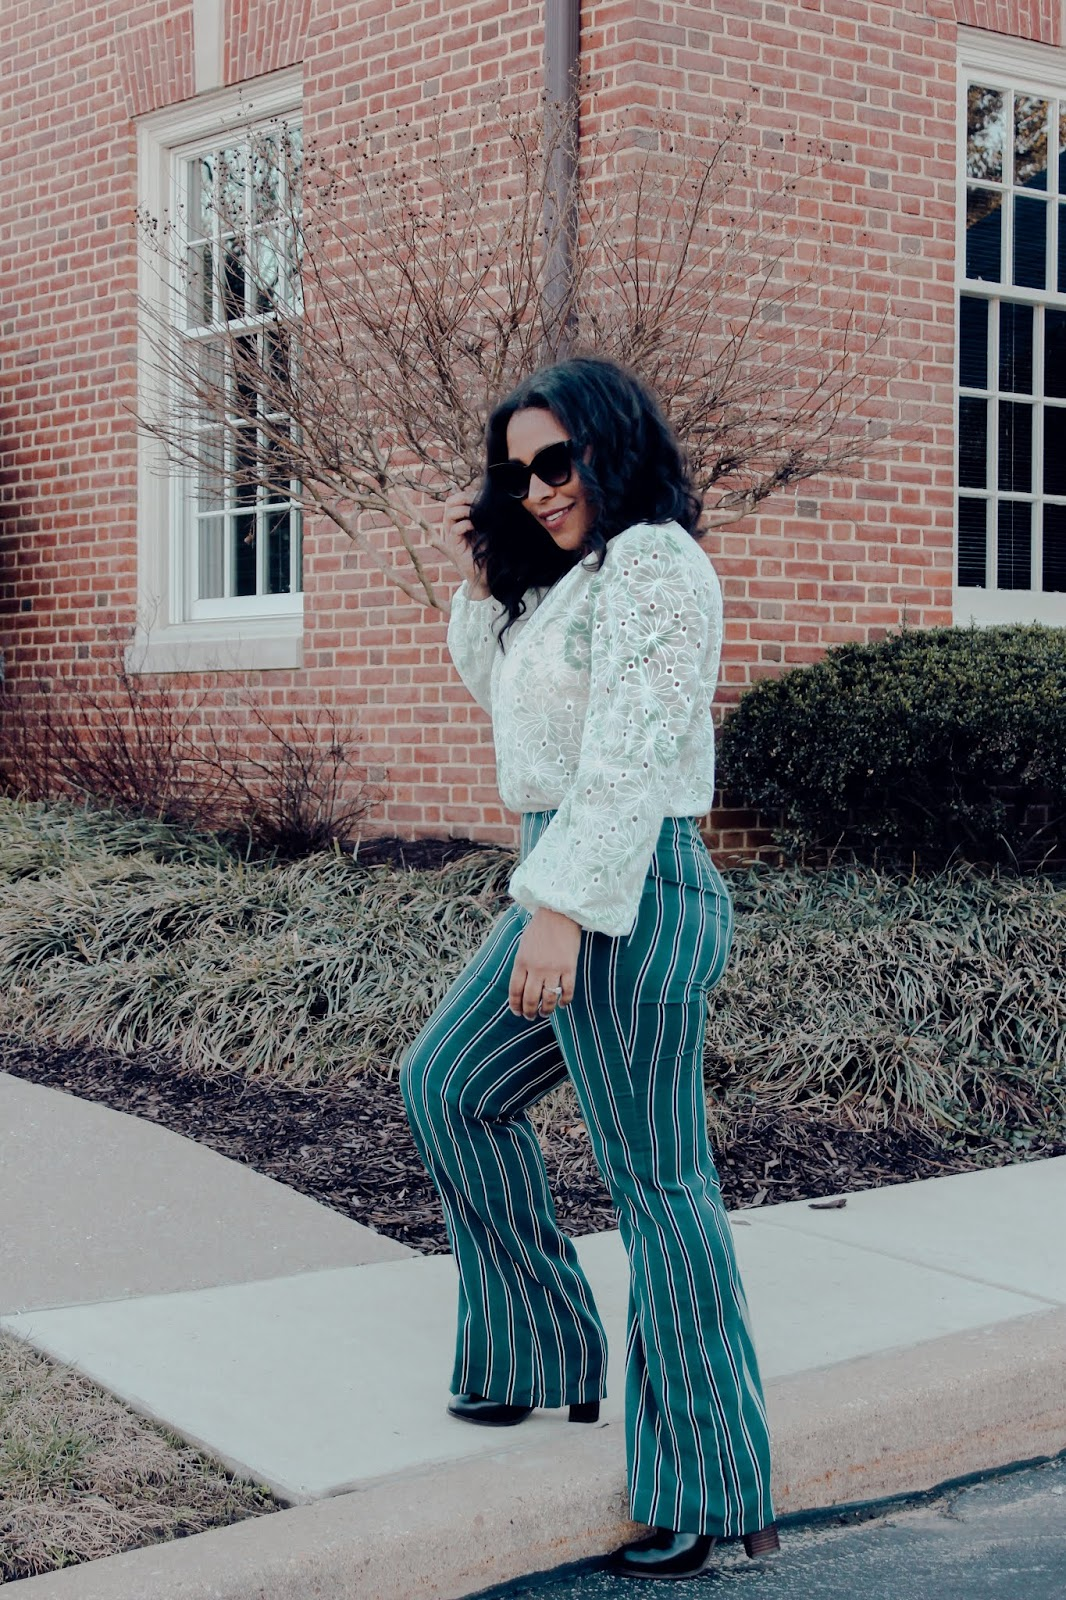 shein, shein clothing review, pattys kloset, bodysuit outfits, spring trends, chic mom looks